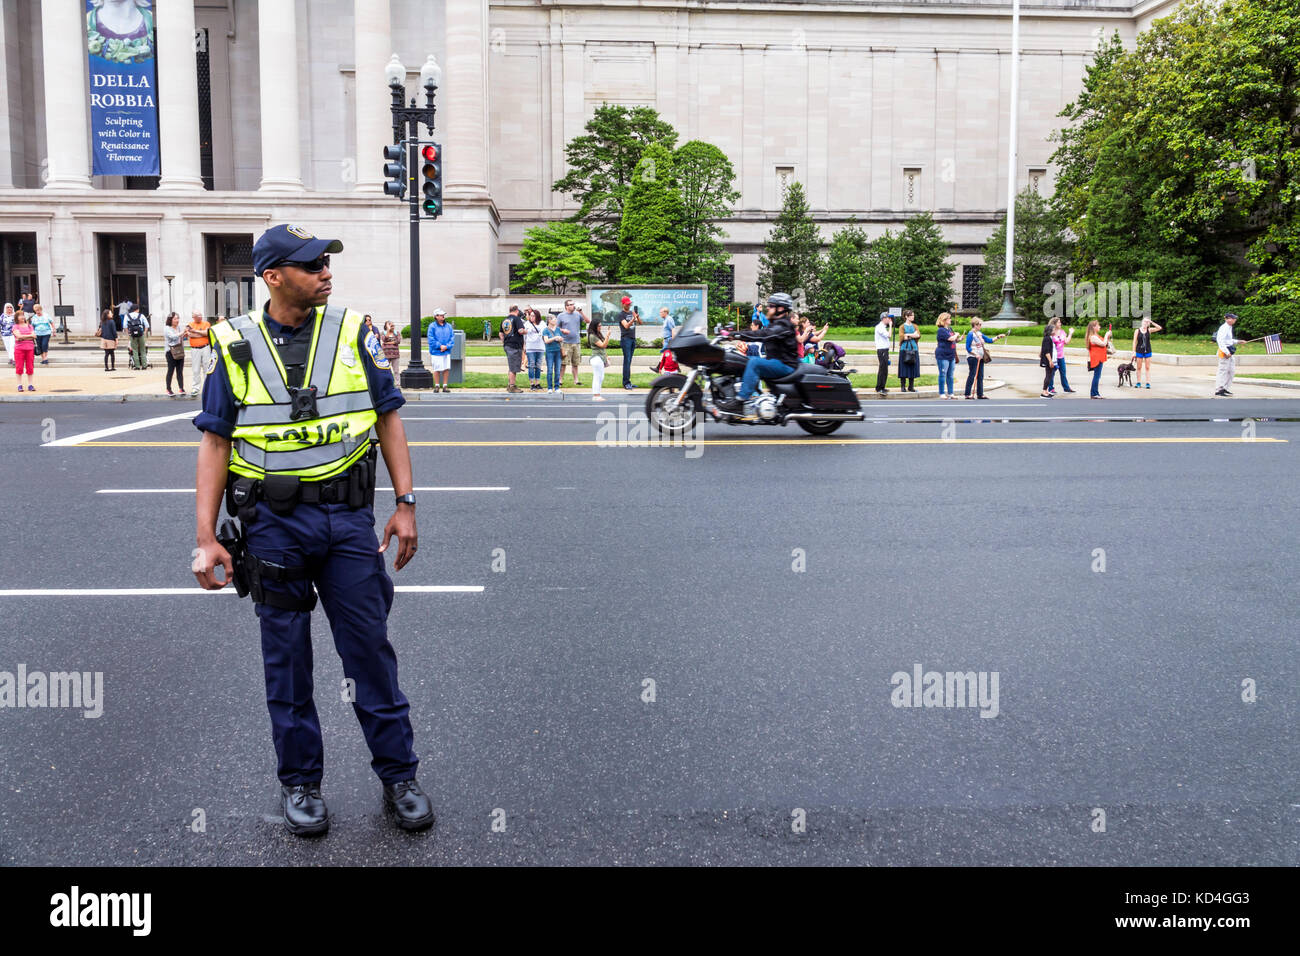 Washington DC, District of Columbia, Constitution Avenue, Rolling Thunder Ride for Freedom, motociclisti biciclette, Foto Stock